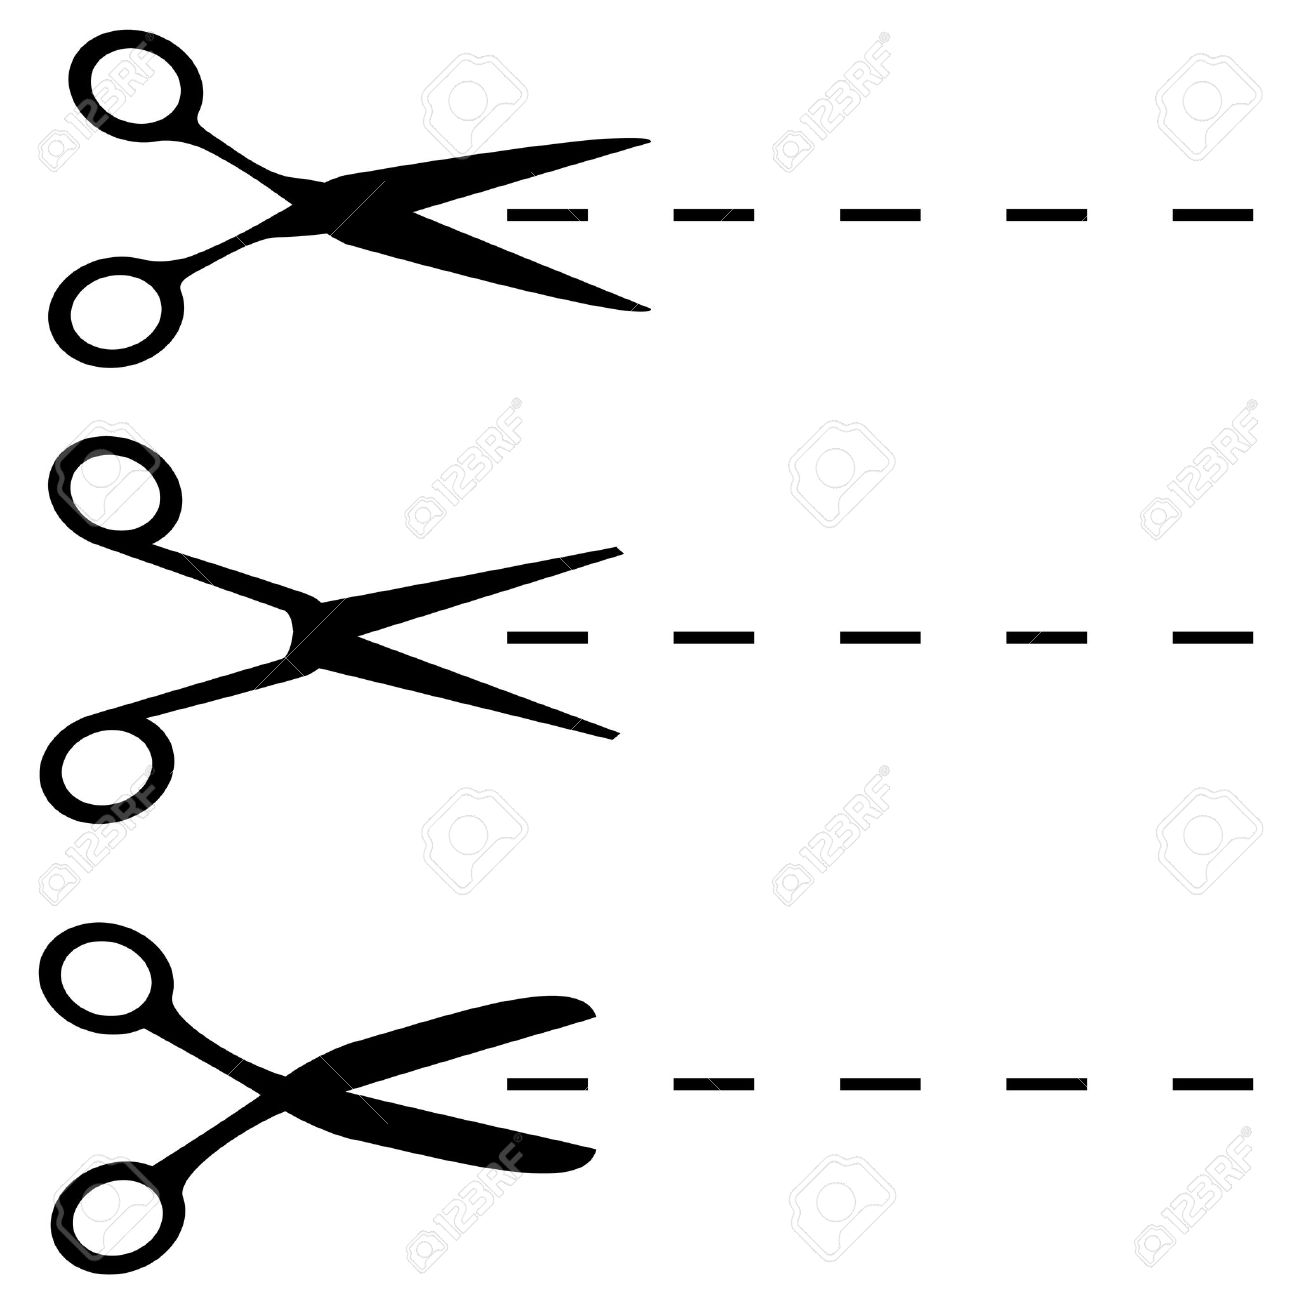 Scissors Black Shapes Isolated On White. Royalty Free Cliparts.